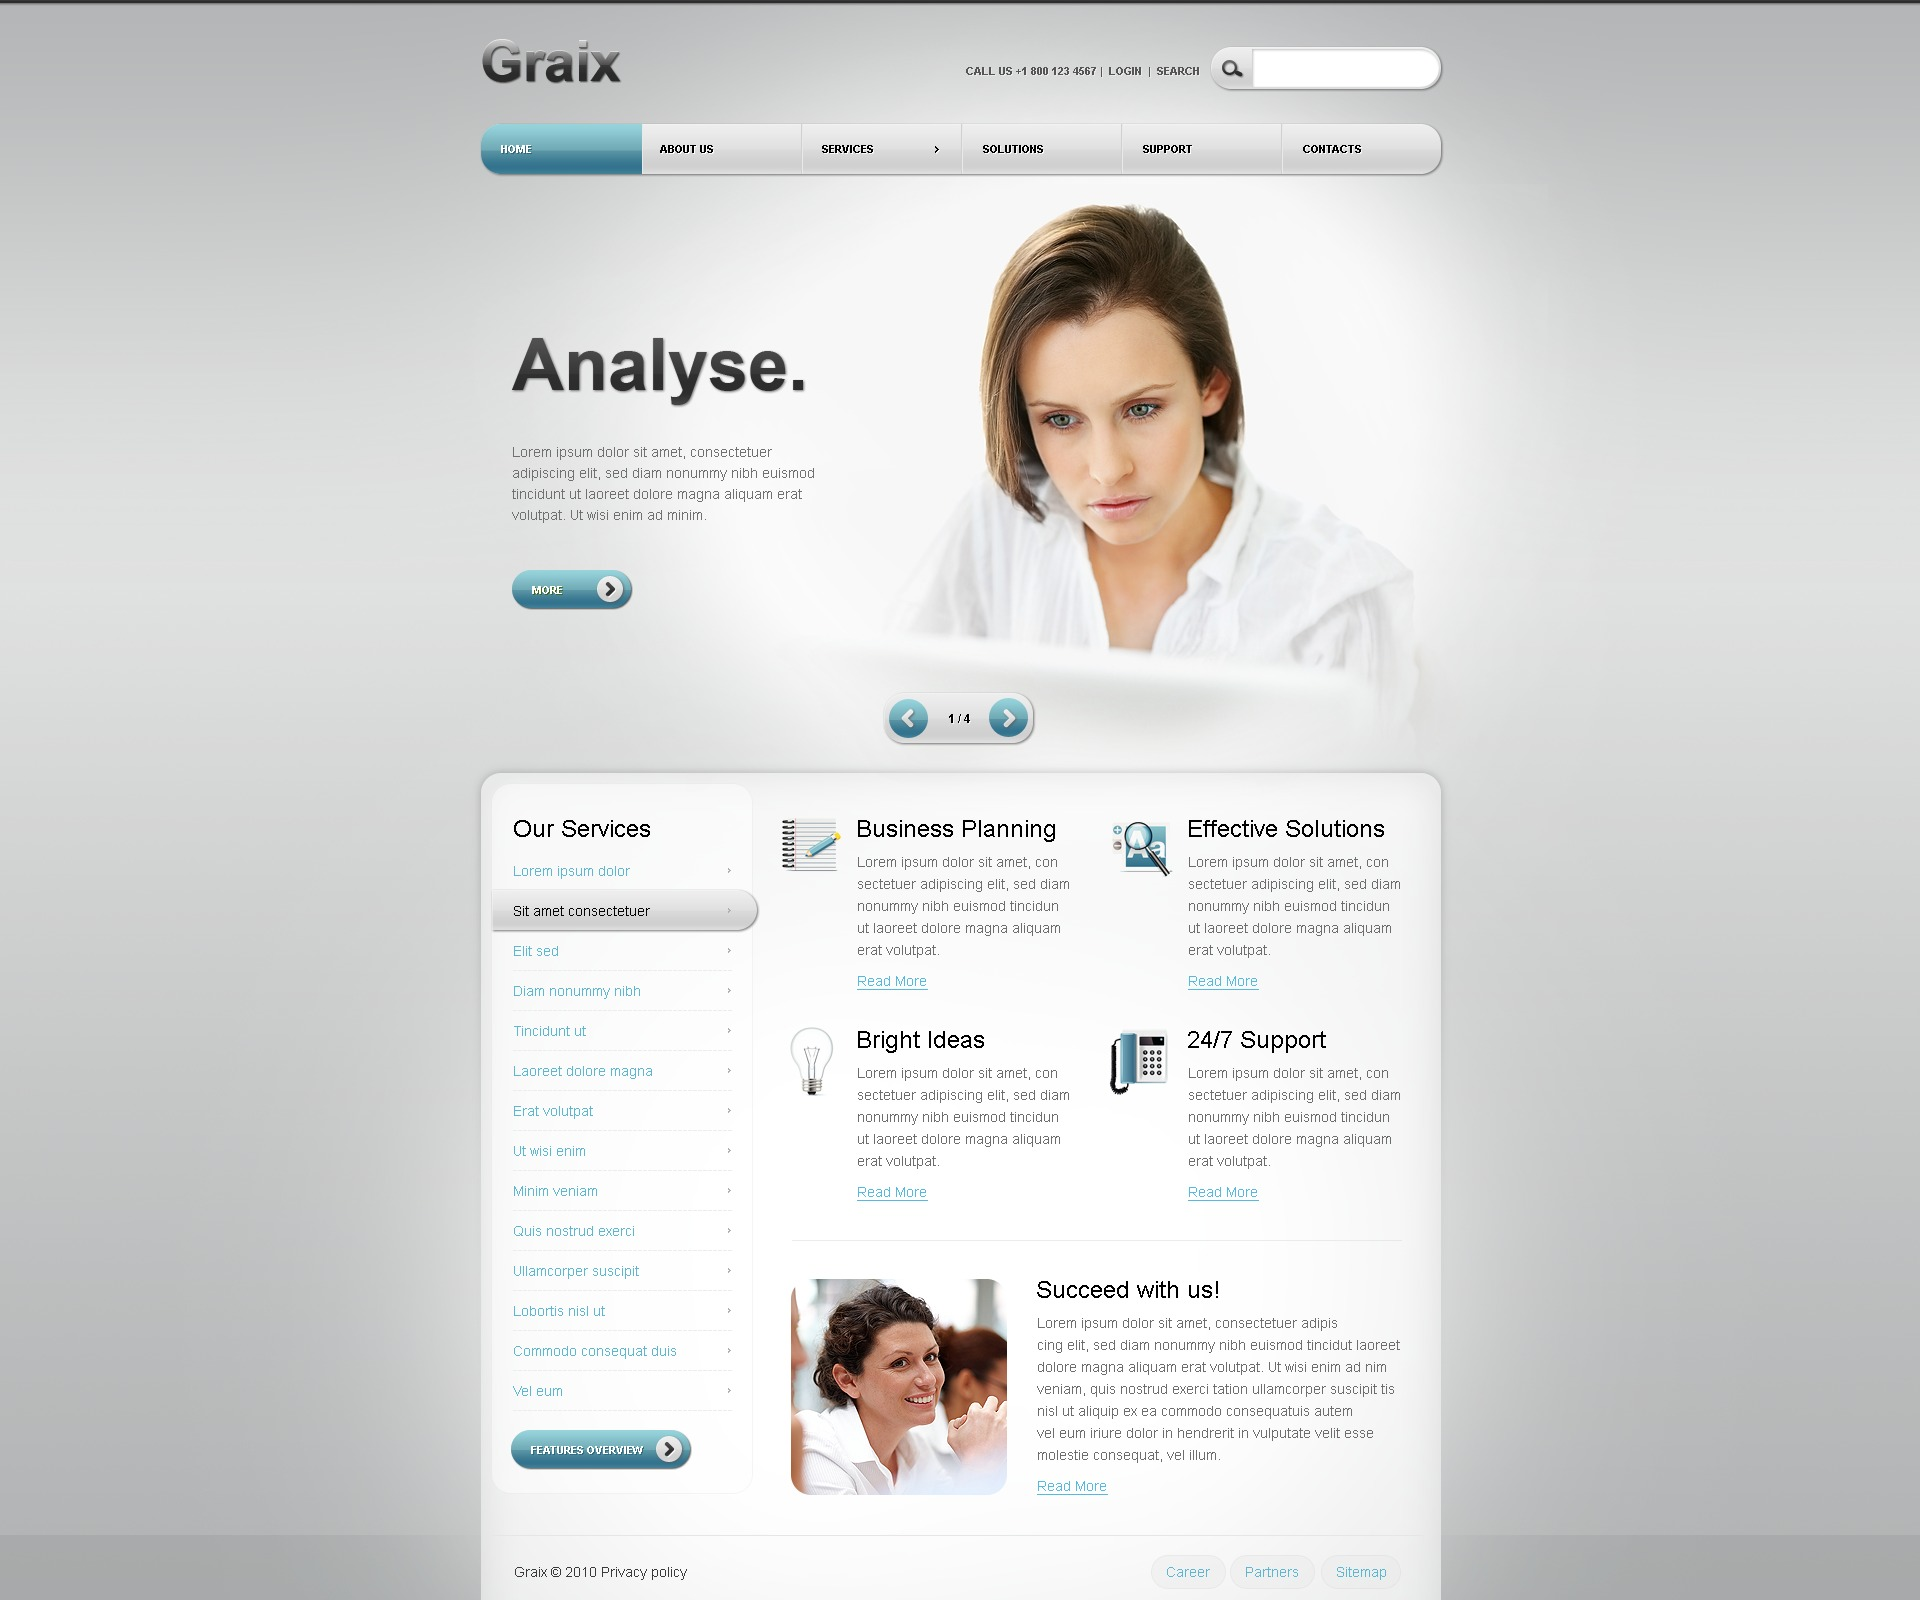 The Graix Business Company PSD Design 54254, one of the best PSD templates of its kind (business, wide, jquery), also known as graix business company PSD template, corporate solutions PSD template, innovations PSD template, contacts PSD template, service PSD template, support PSD template, information dealer PSD template, stocks PSD template, team PSD template, success PSD template, money PSD template, marketing PSD template, director PSD template, manager PSD template, analytics PSD template, planning PSD template, limited PSD template, office PSD template, sales and related with graix business company, corporate solutions, innovations, contacts, service, support, information dealer, stocks, team, success, money, marketing, director, manager, analytics, planning, limited, office, sales, etc.